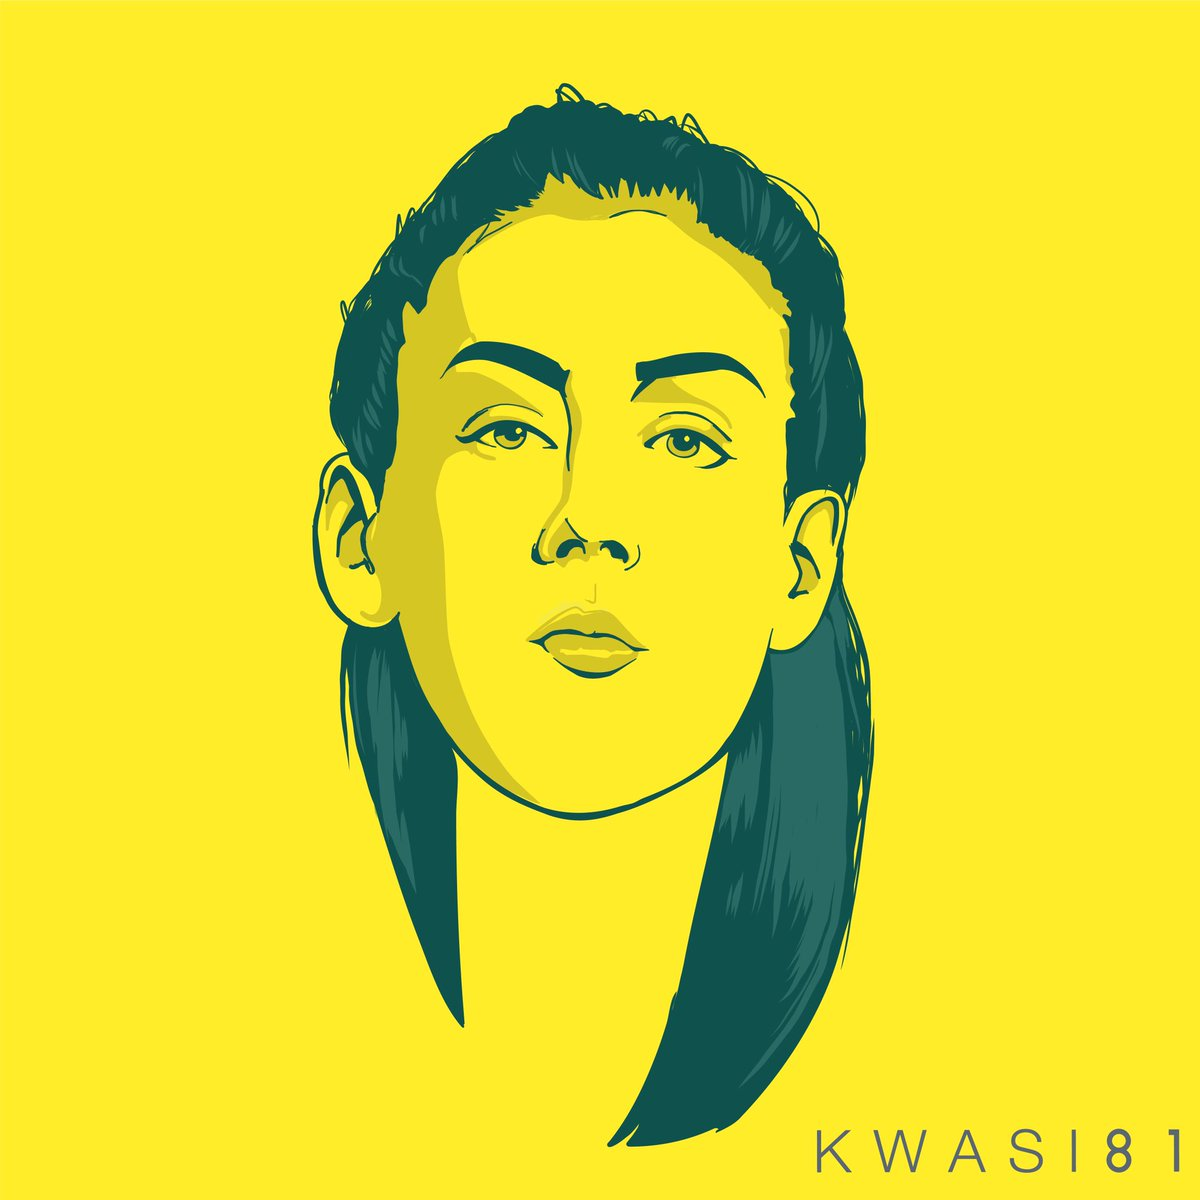 Here is a #BreannaStewart illustration in a comic book style. This is part of an idea I was working on. Happy Wednesday #wnba #Seattle #Seattlestorm https://t.co/4ZyCa5rEaE